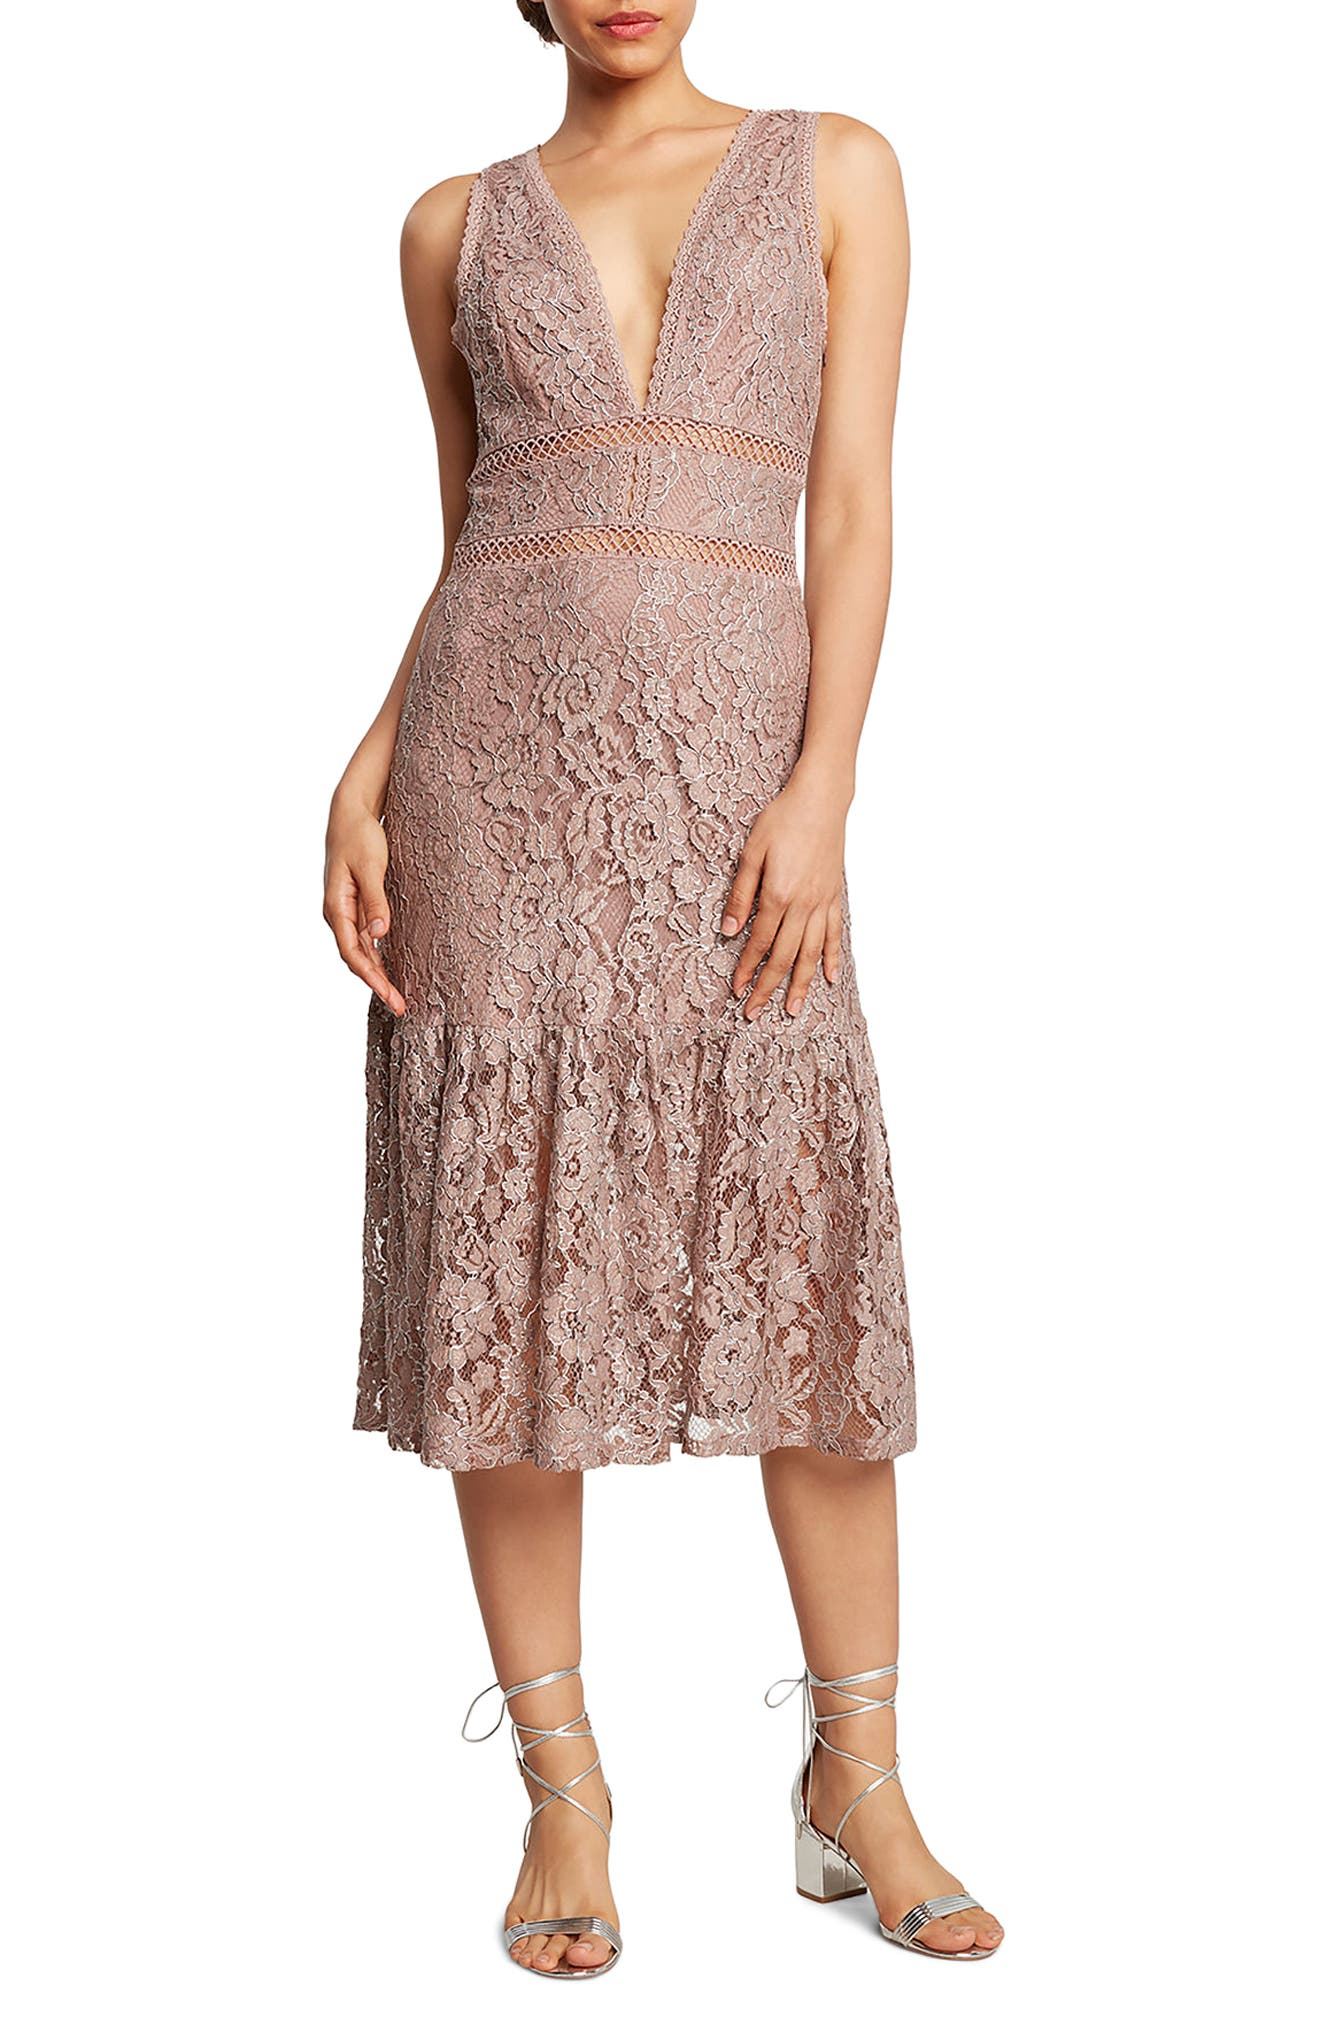 WILLOW & CLAY Lace Foil Midi Dress, Main, color, 530